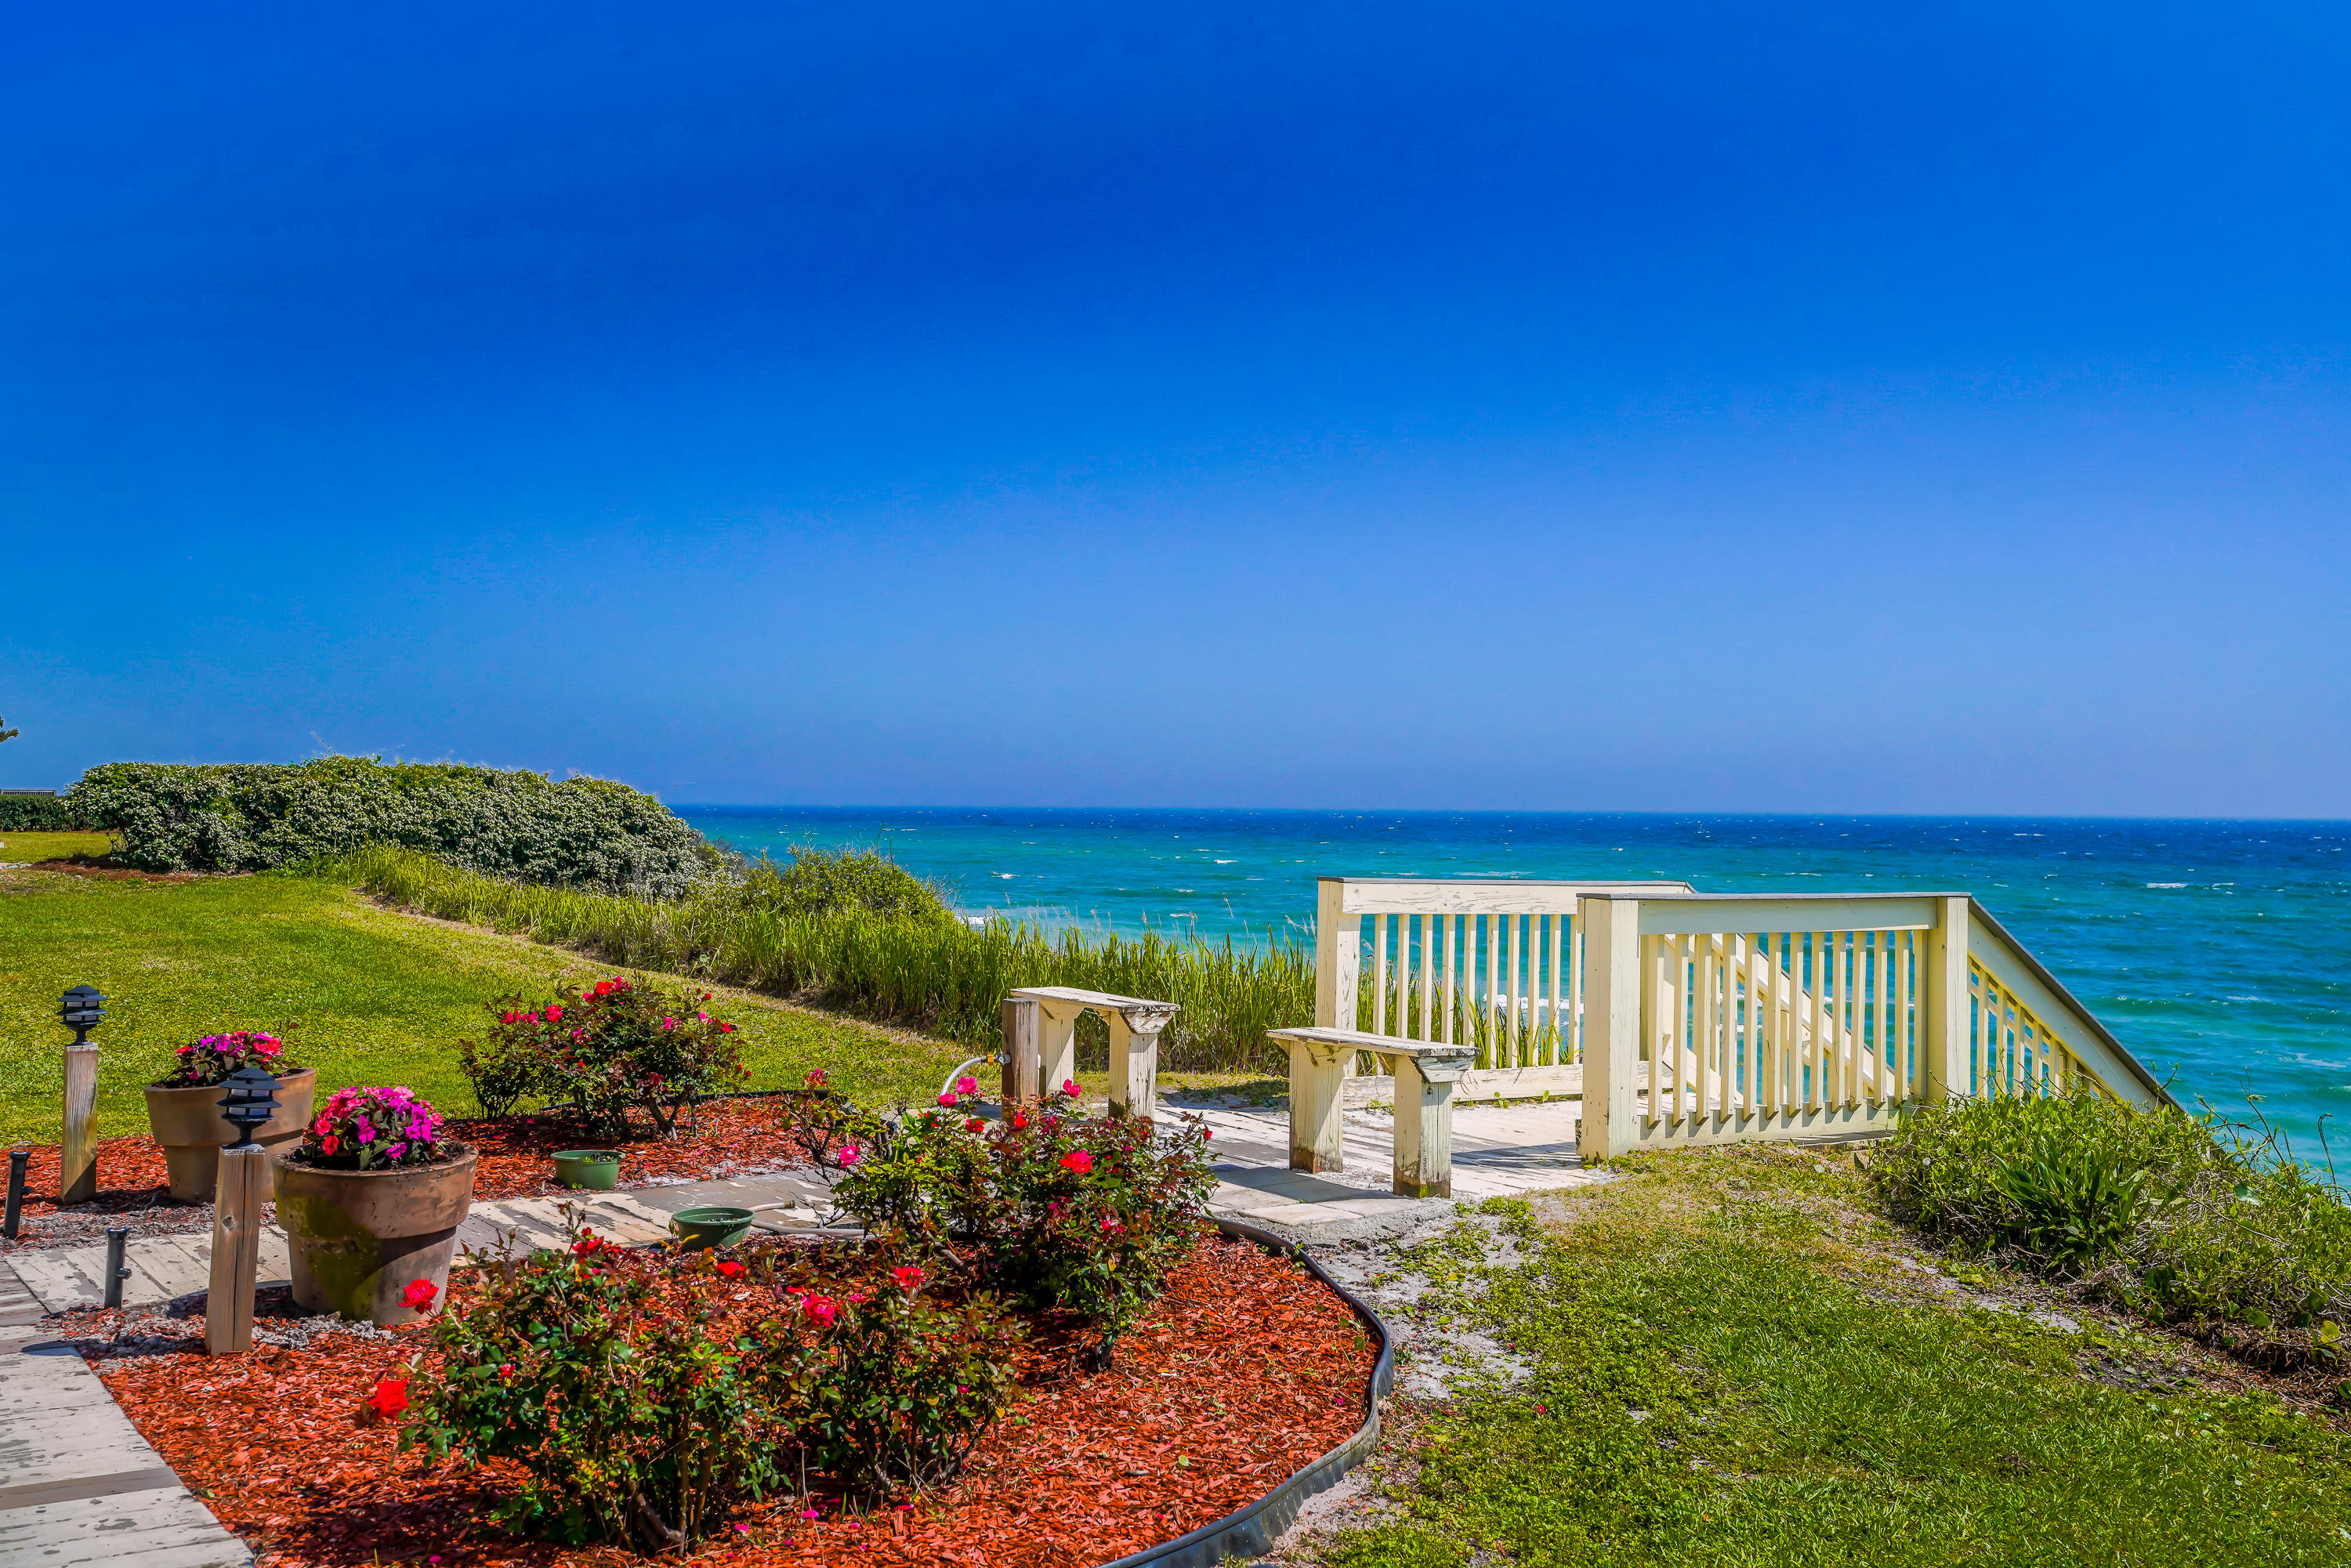 Stunning views from this updated condo on a high bluff overlooking the emerald waters of the Gulf of Mexico.  Blue Tide has an amazing location on the E end of 30A, close to Rosemary Beach and Alys Beach.  Intimate complex with pool, gorgeous beach and assigned parking.  Strong rental history